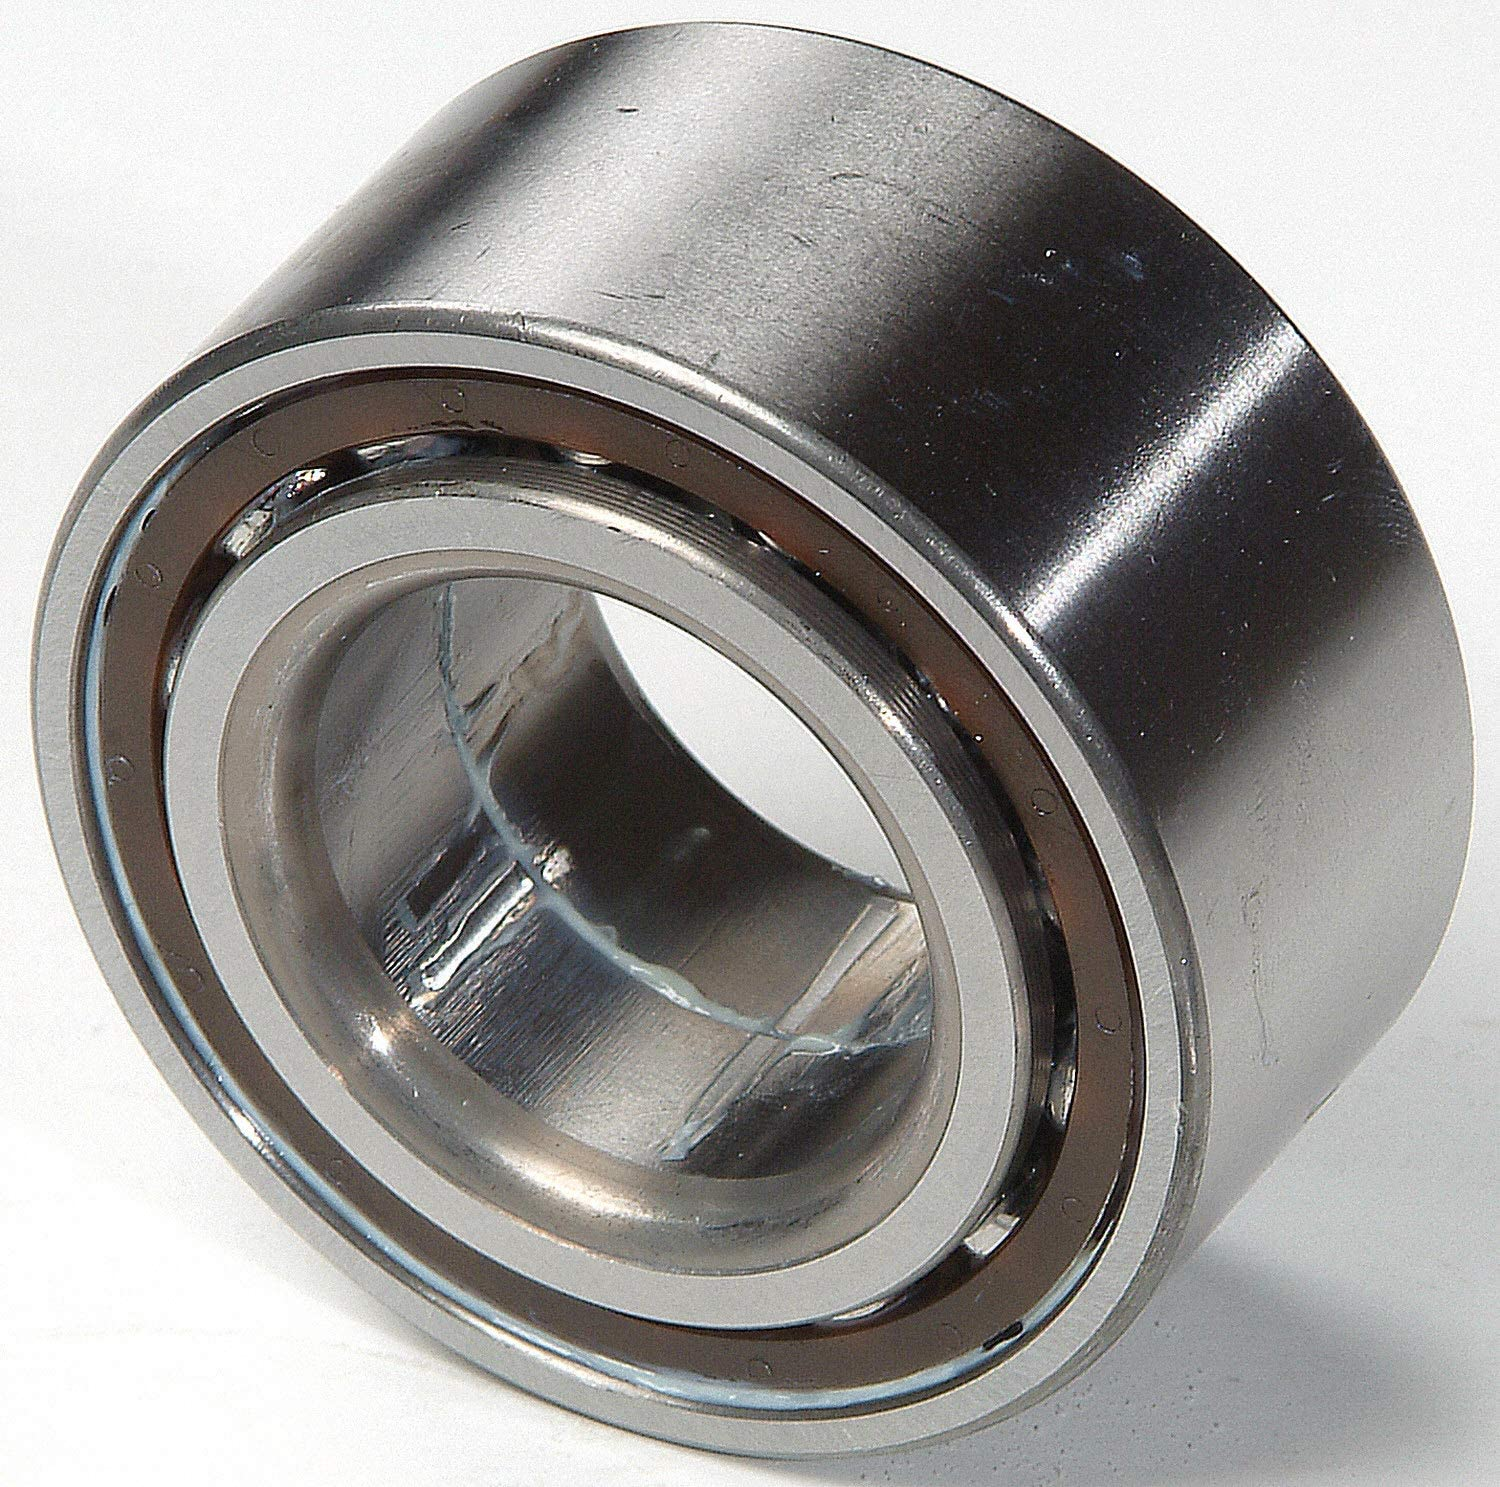 National 510007 2021 autumn and winter Limited price sale new Wheel Bearing